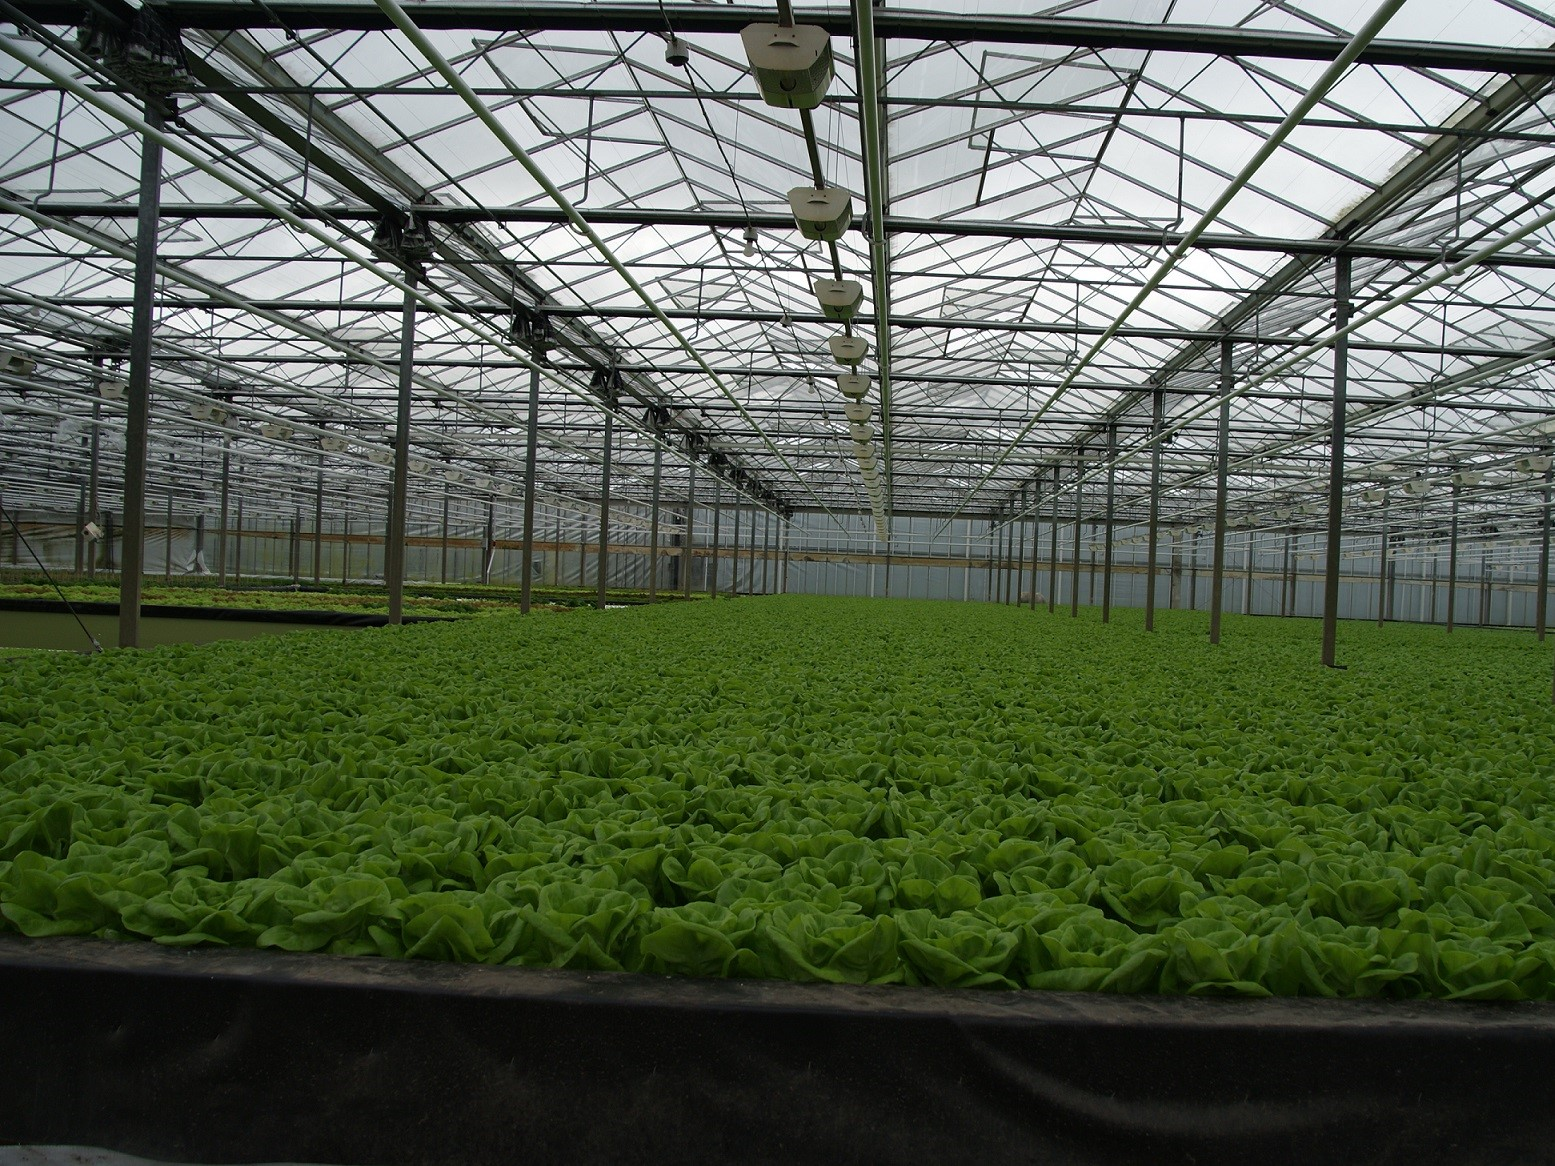 Growing lettuce on water in the greenhouse.